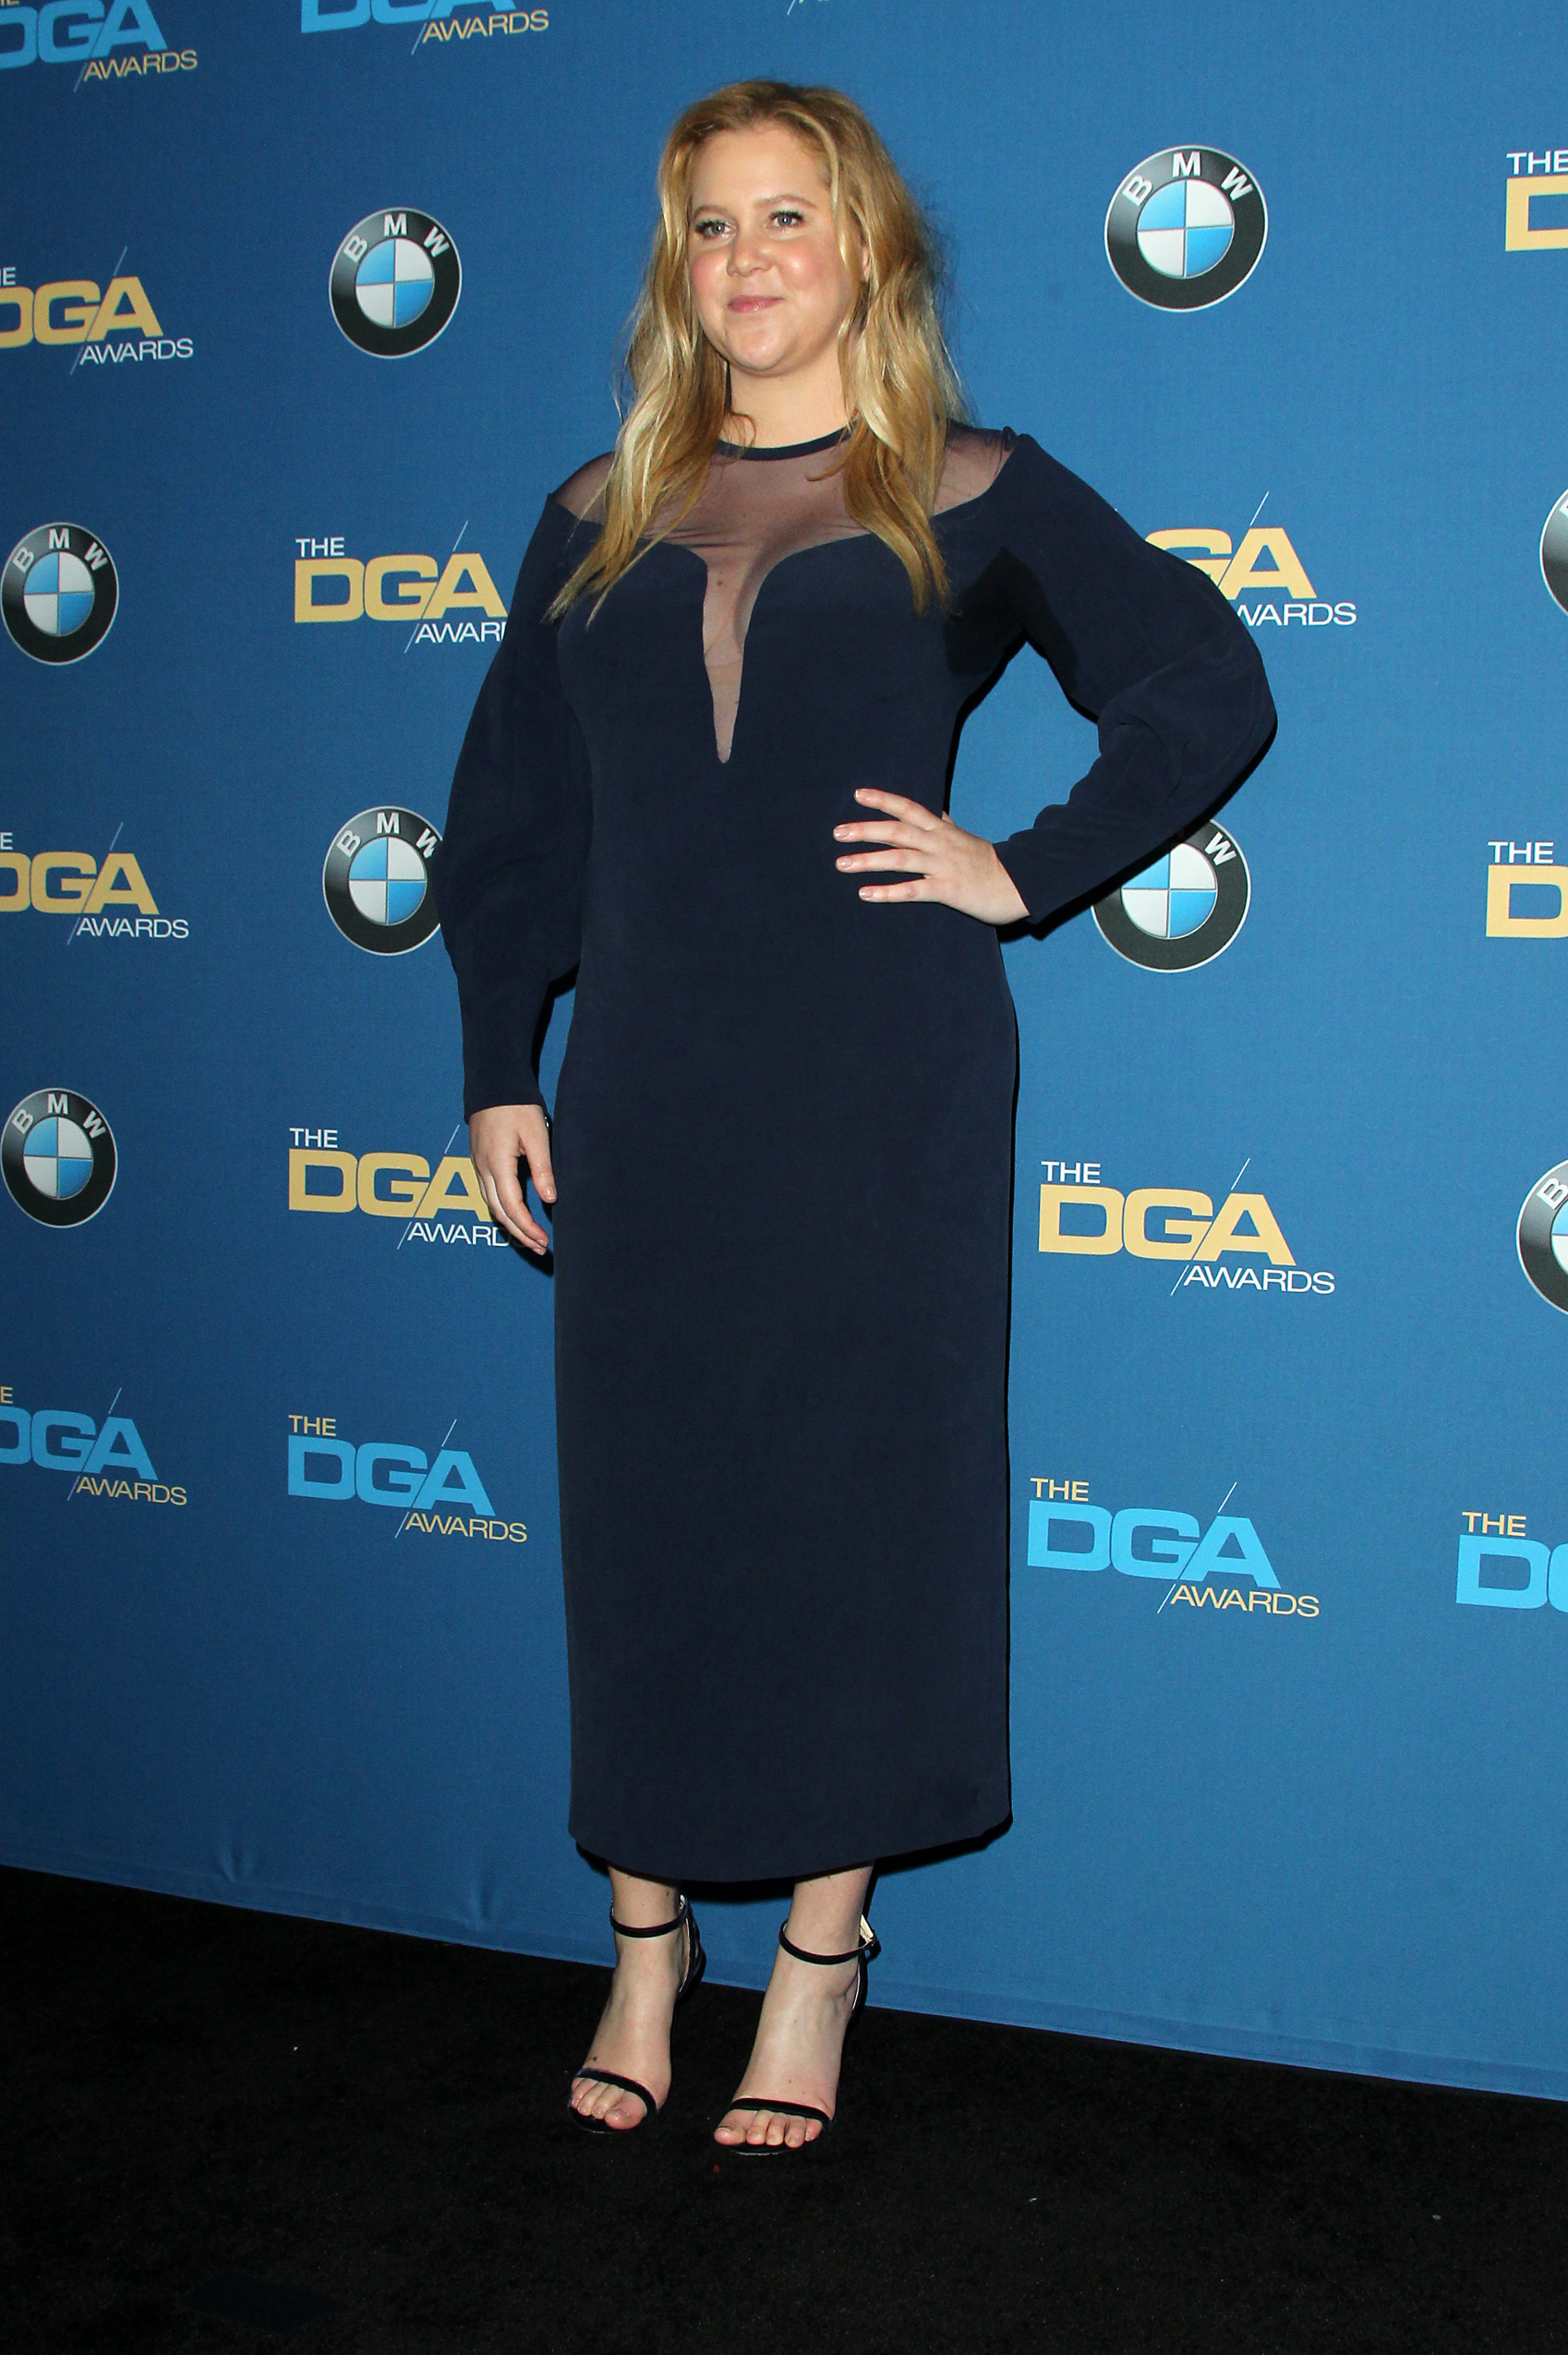 70th Annual DGA Awards 2018 Press Room held at the Beverly Hilton Hotel in Beverly Hills, California.Featuring: Amy SchumerWhere: Los Angeles, California, United StatesWhen: 04 Feb 2018Credit: Adriana M. Barraza/WENN.com